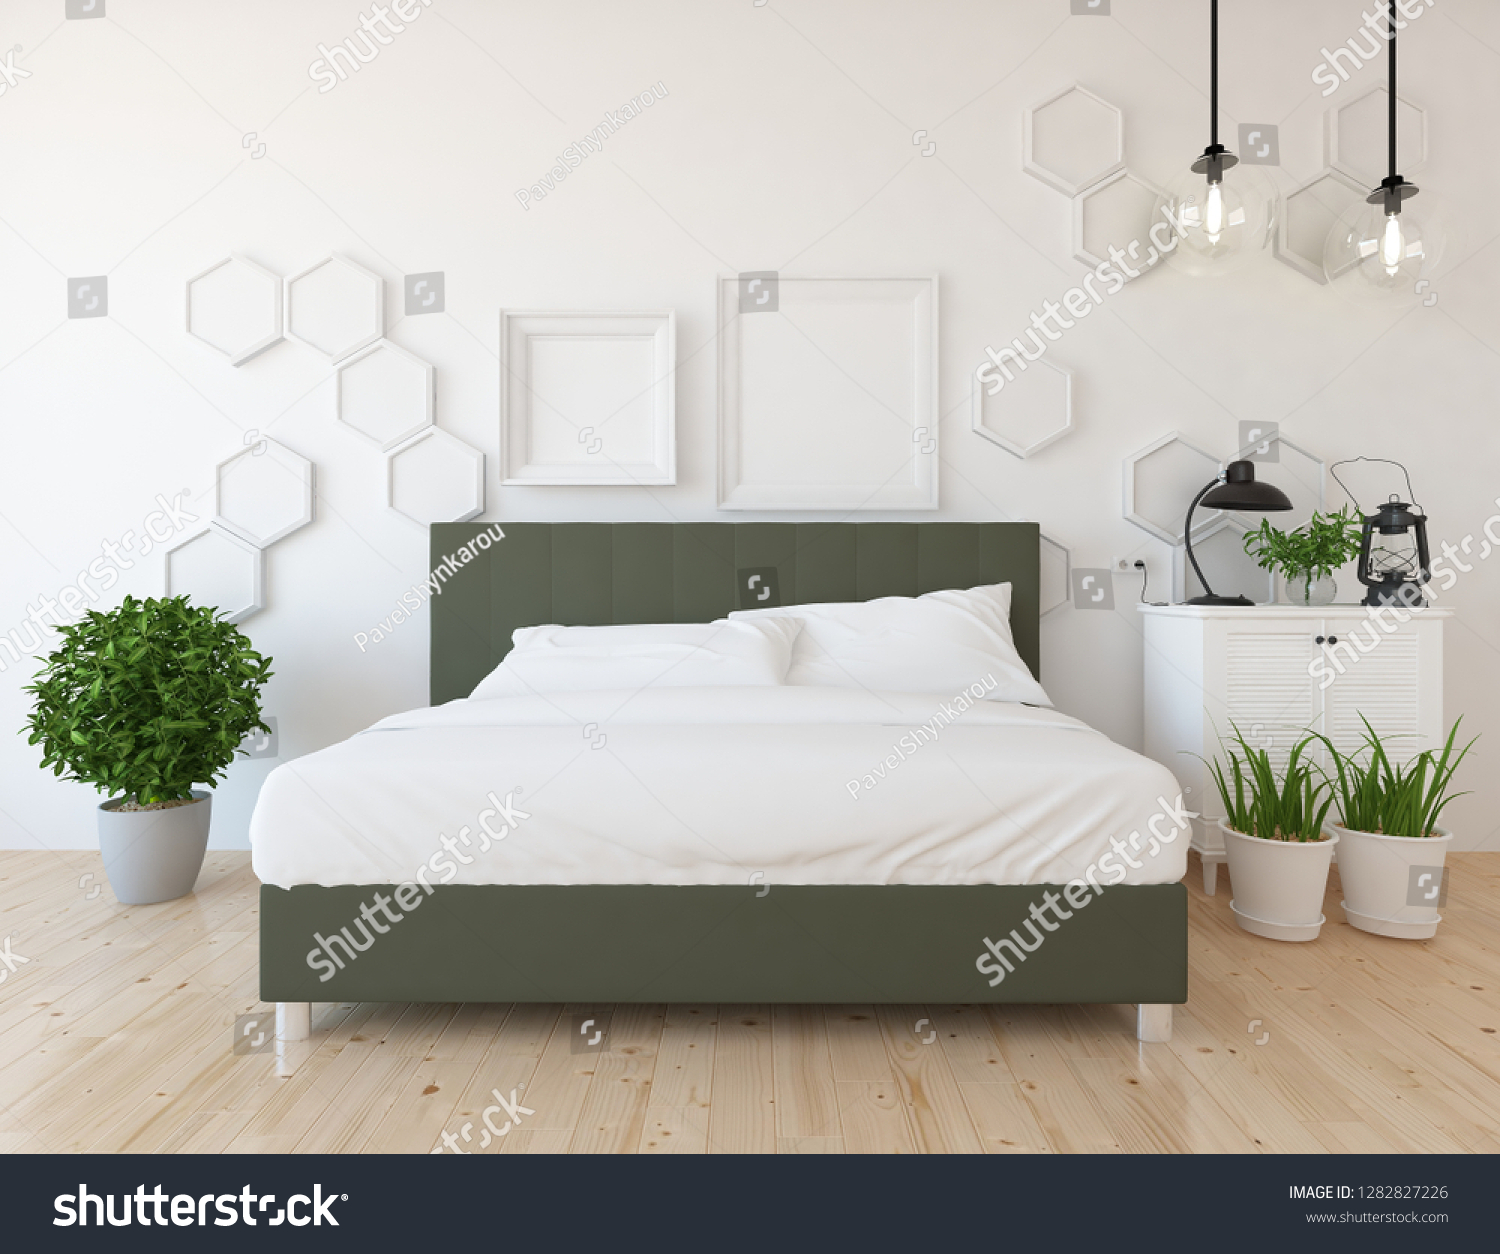 Idea White Scandinavian Bedroom Interior Double Stock Illustration 1282827226